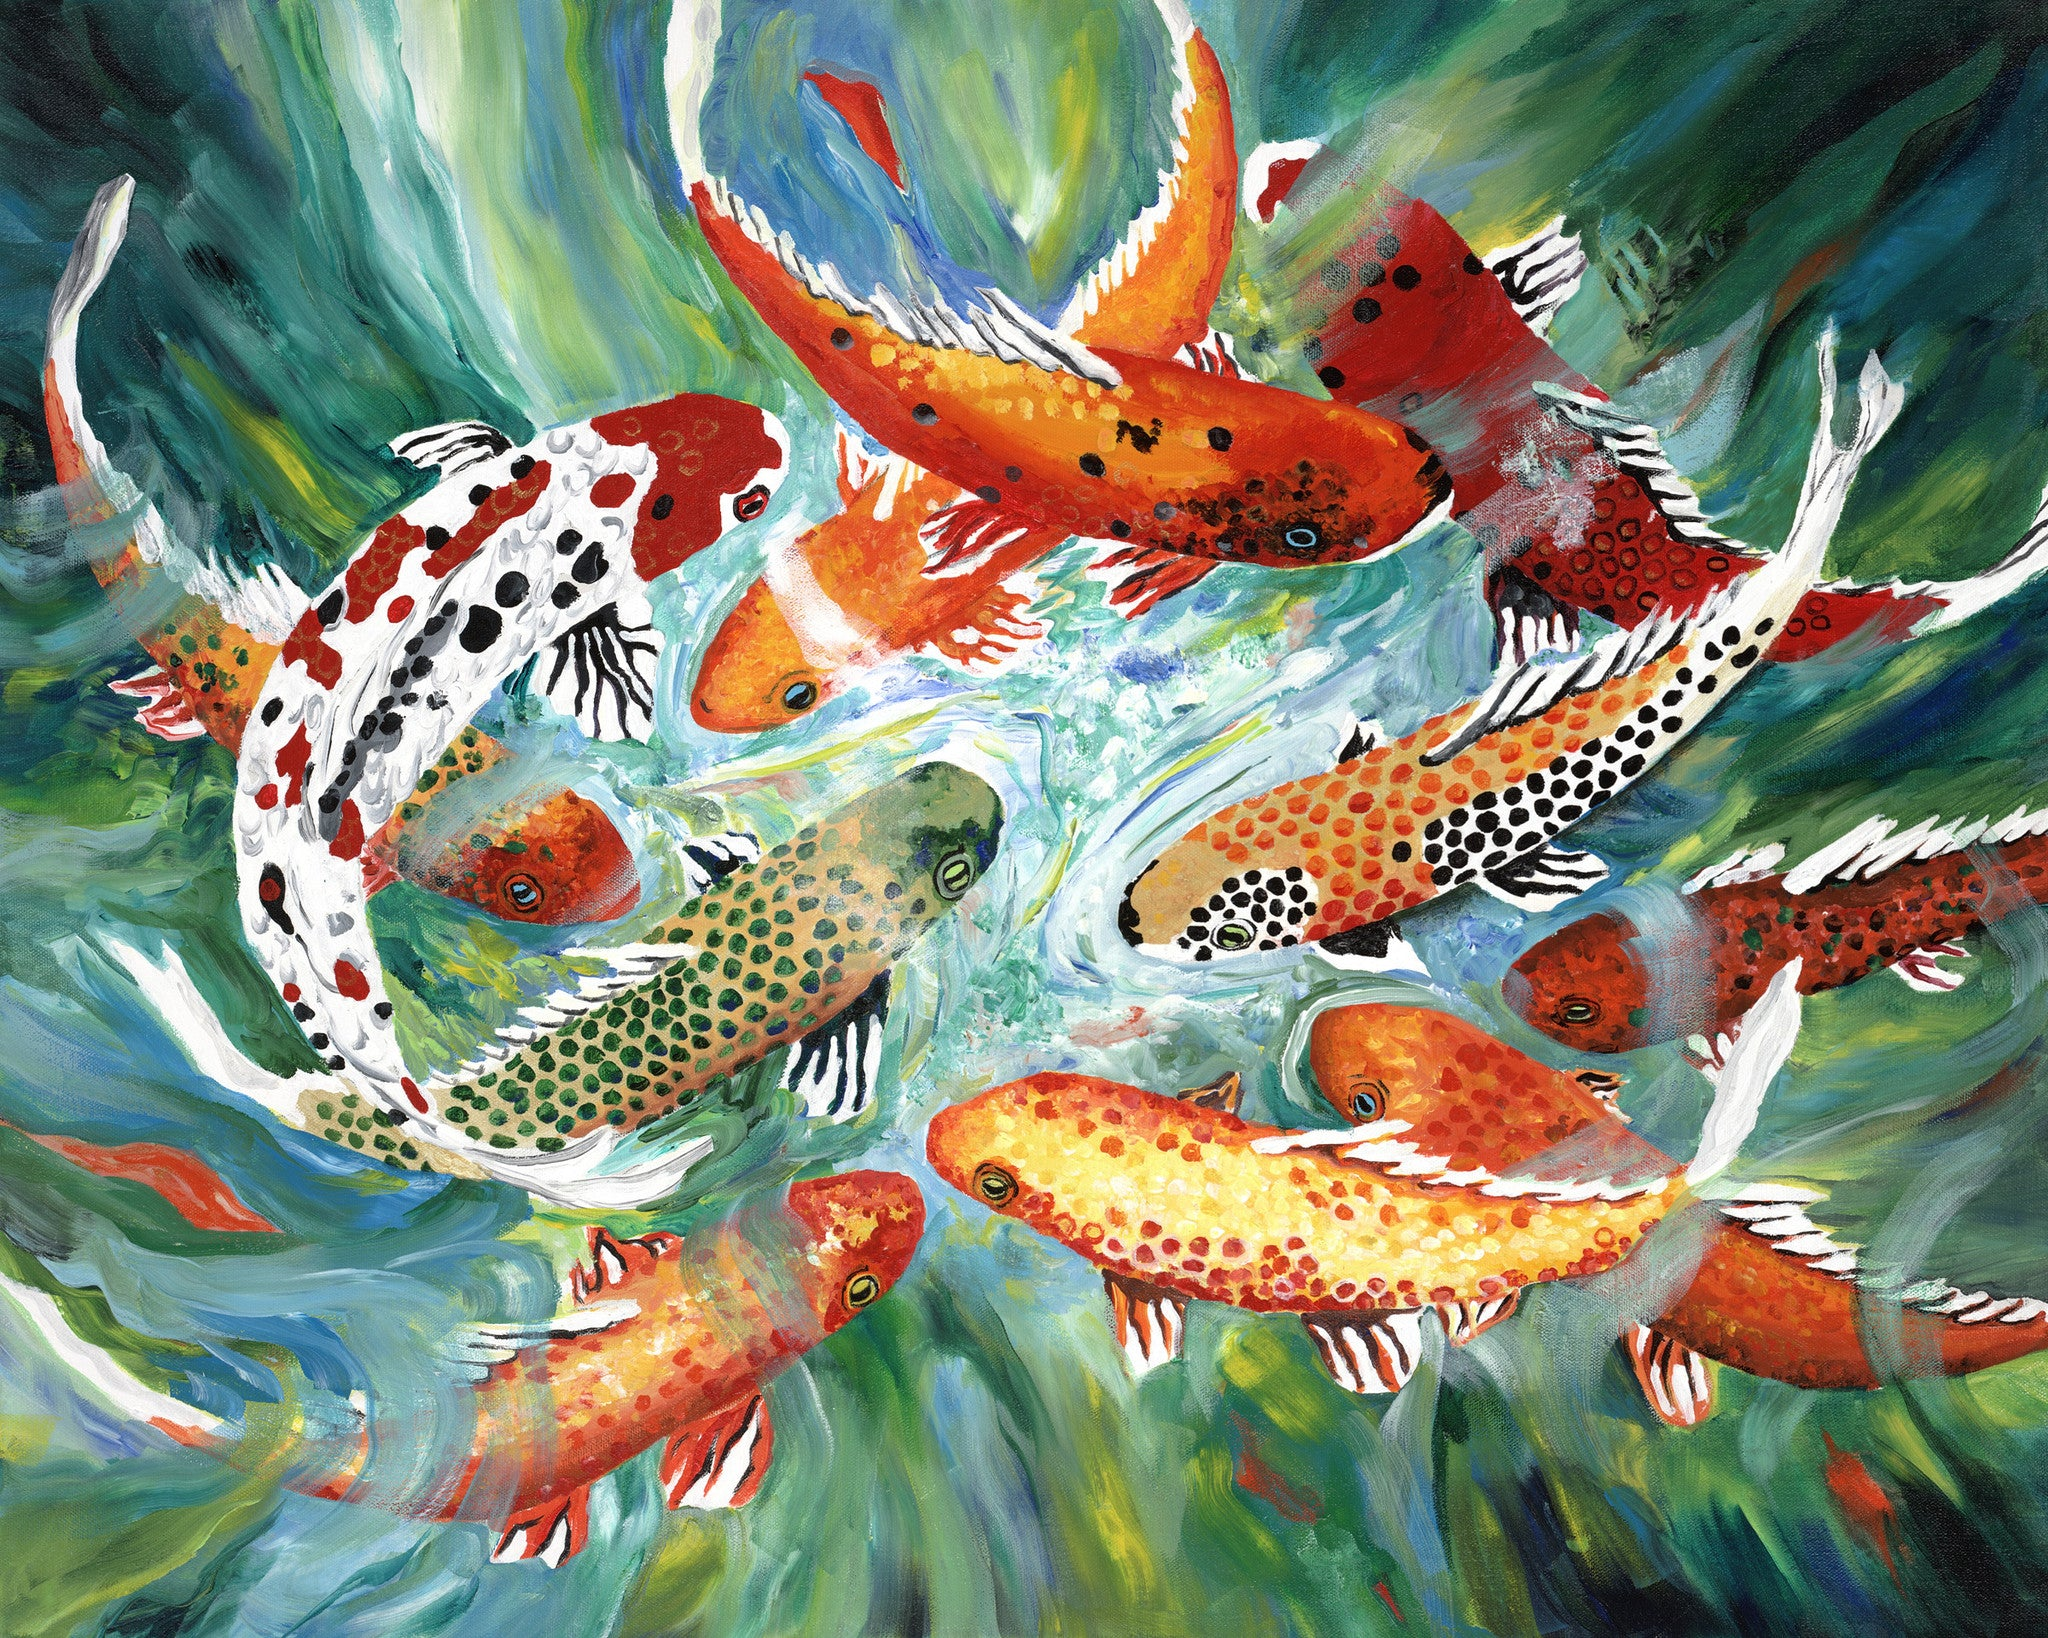 Koi In Pond Painting by Jill Saur